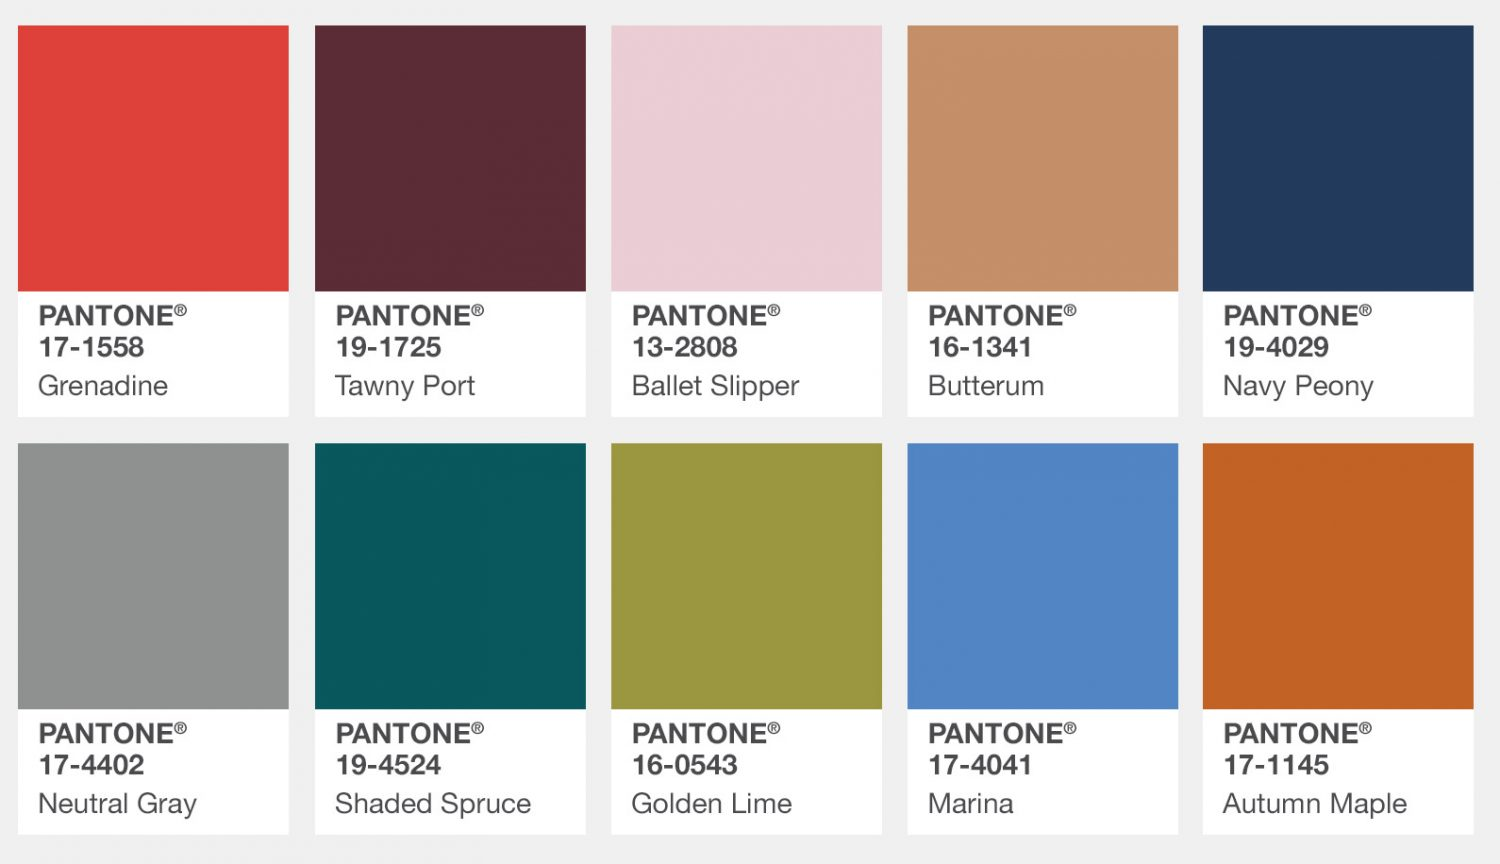 According to Pantone These Are the Fall 2017 Color Trends fall 2017 color trends According to Pantone These Are the Fall 2017 Color Trends According to Pantone These Are the Fall 2017 Color Trends